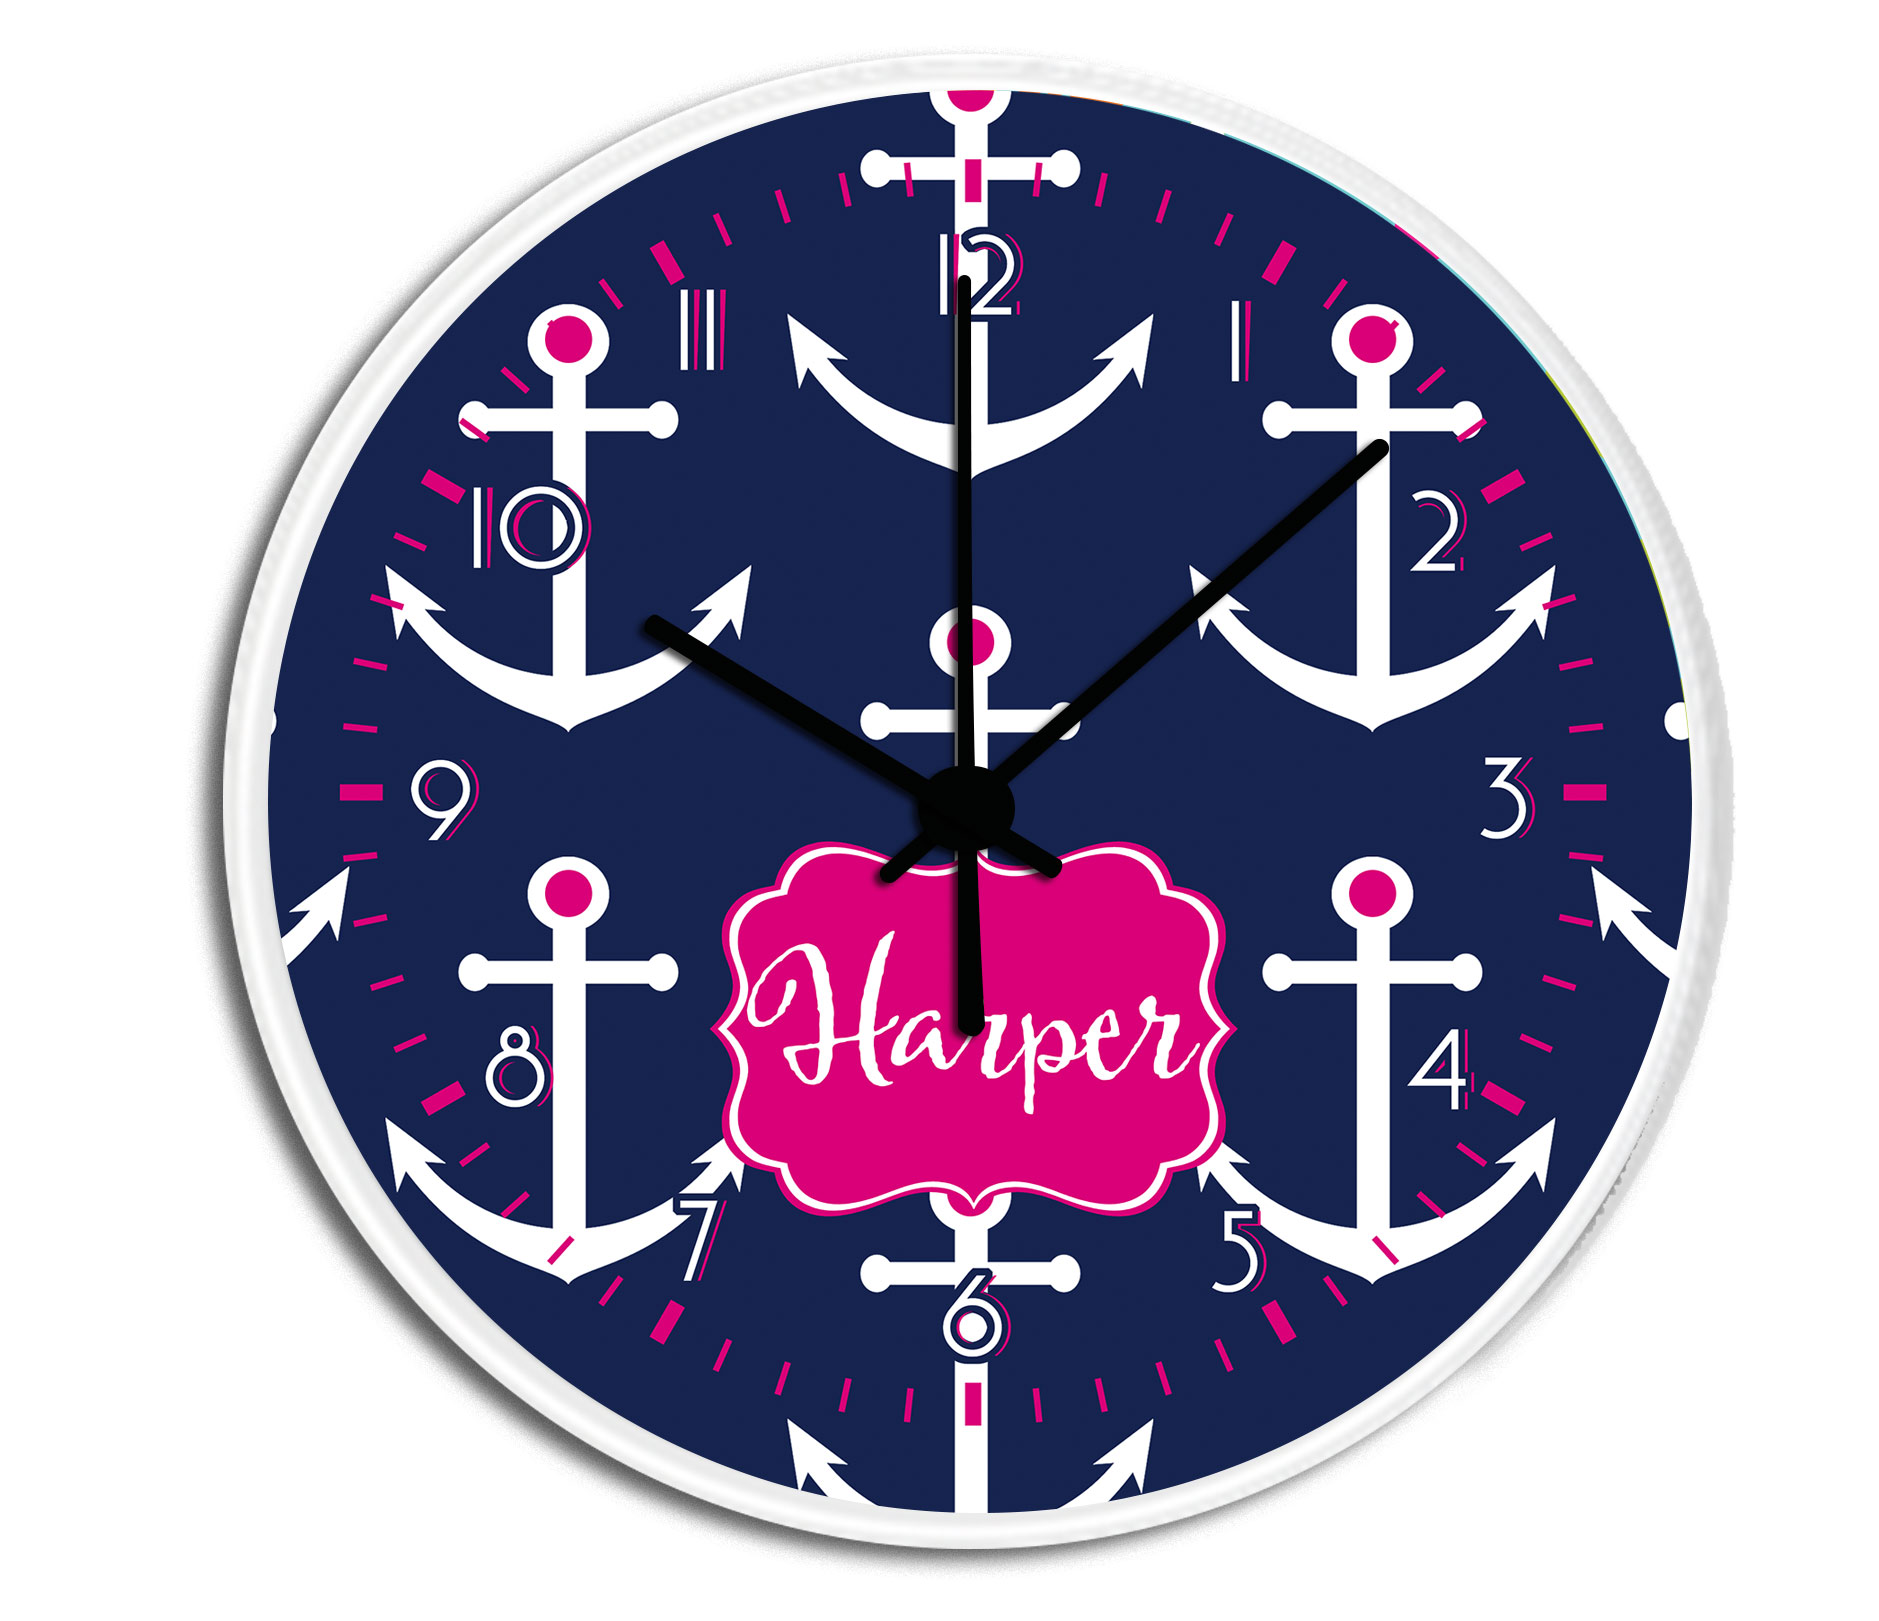 Custom anchor personalized decorative kitchen wall clock bedroom preppy anchors personalized decorative wall clock boys or girls personalized clock amipublicfo Images